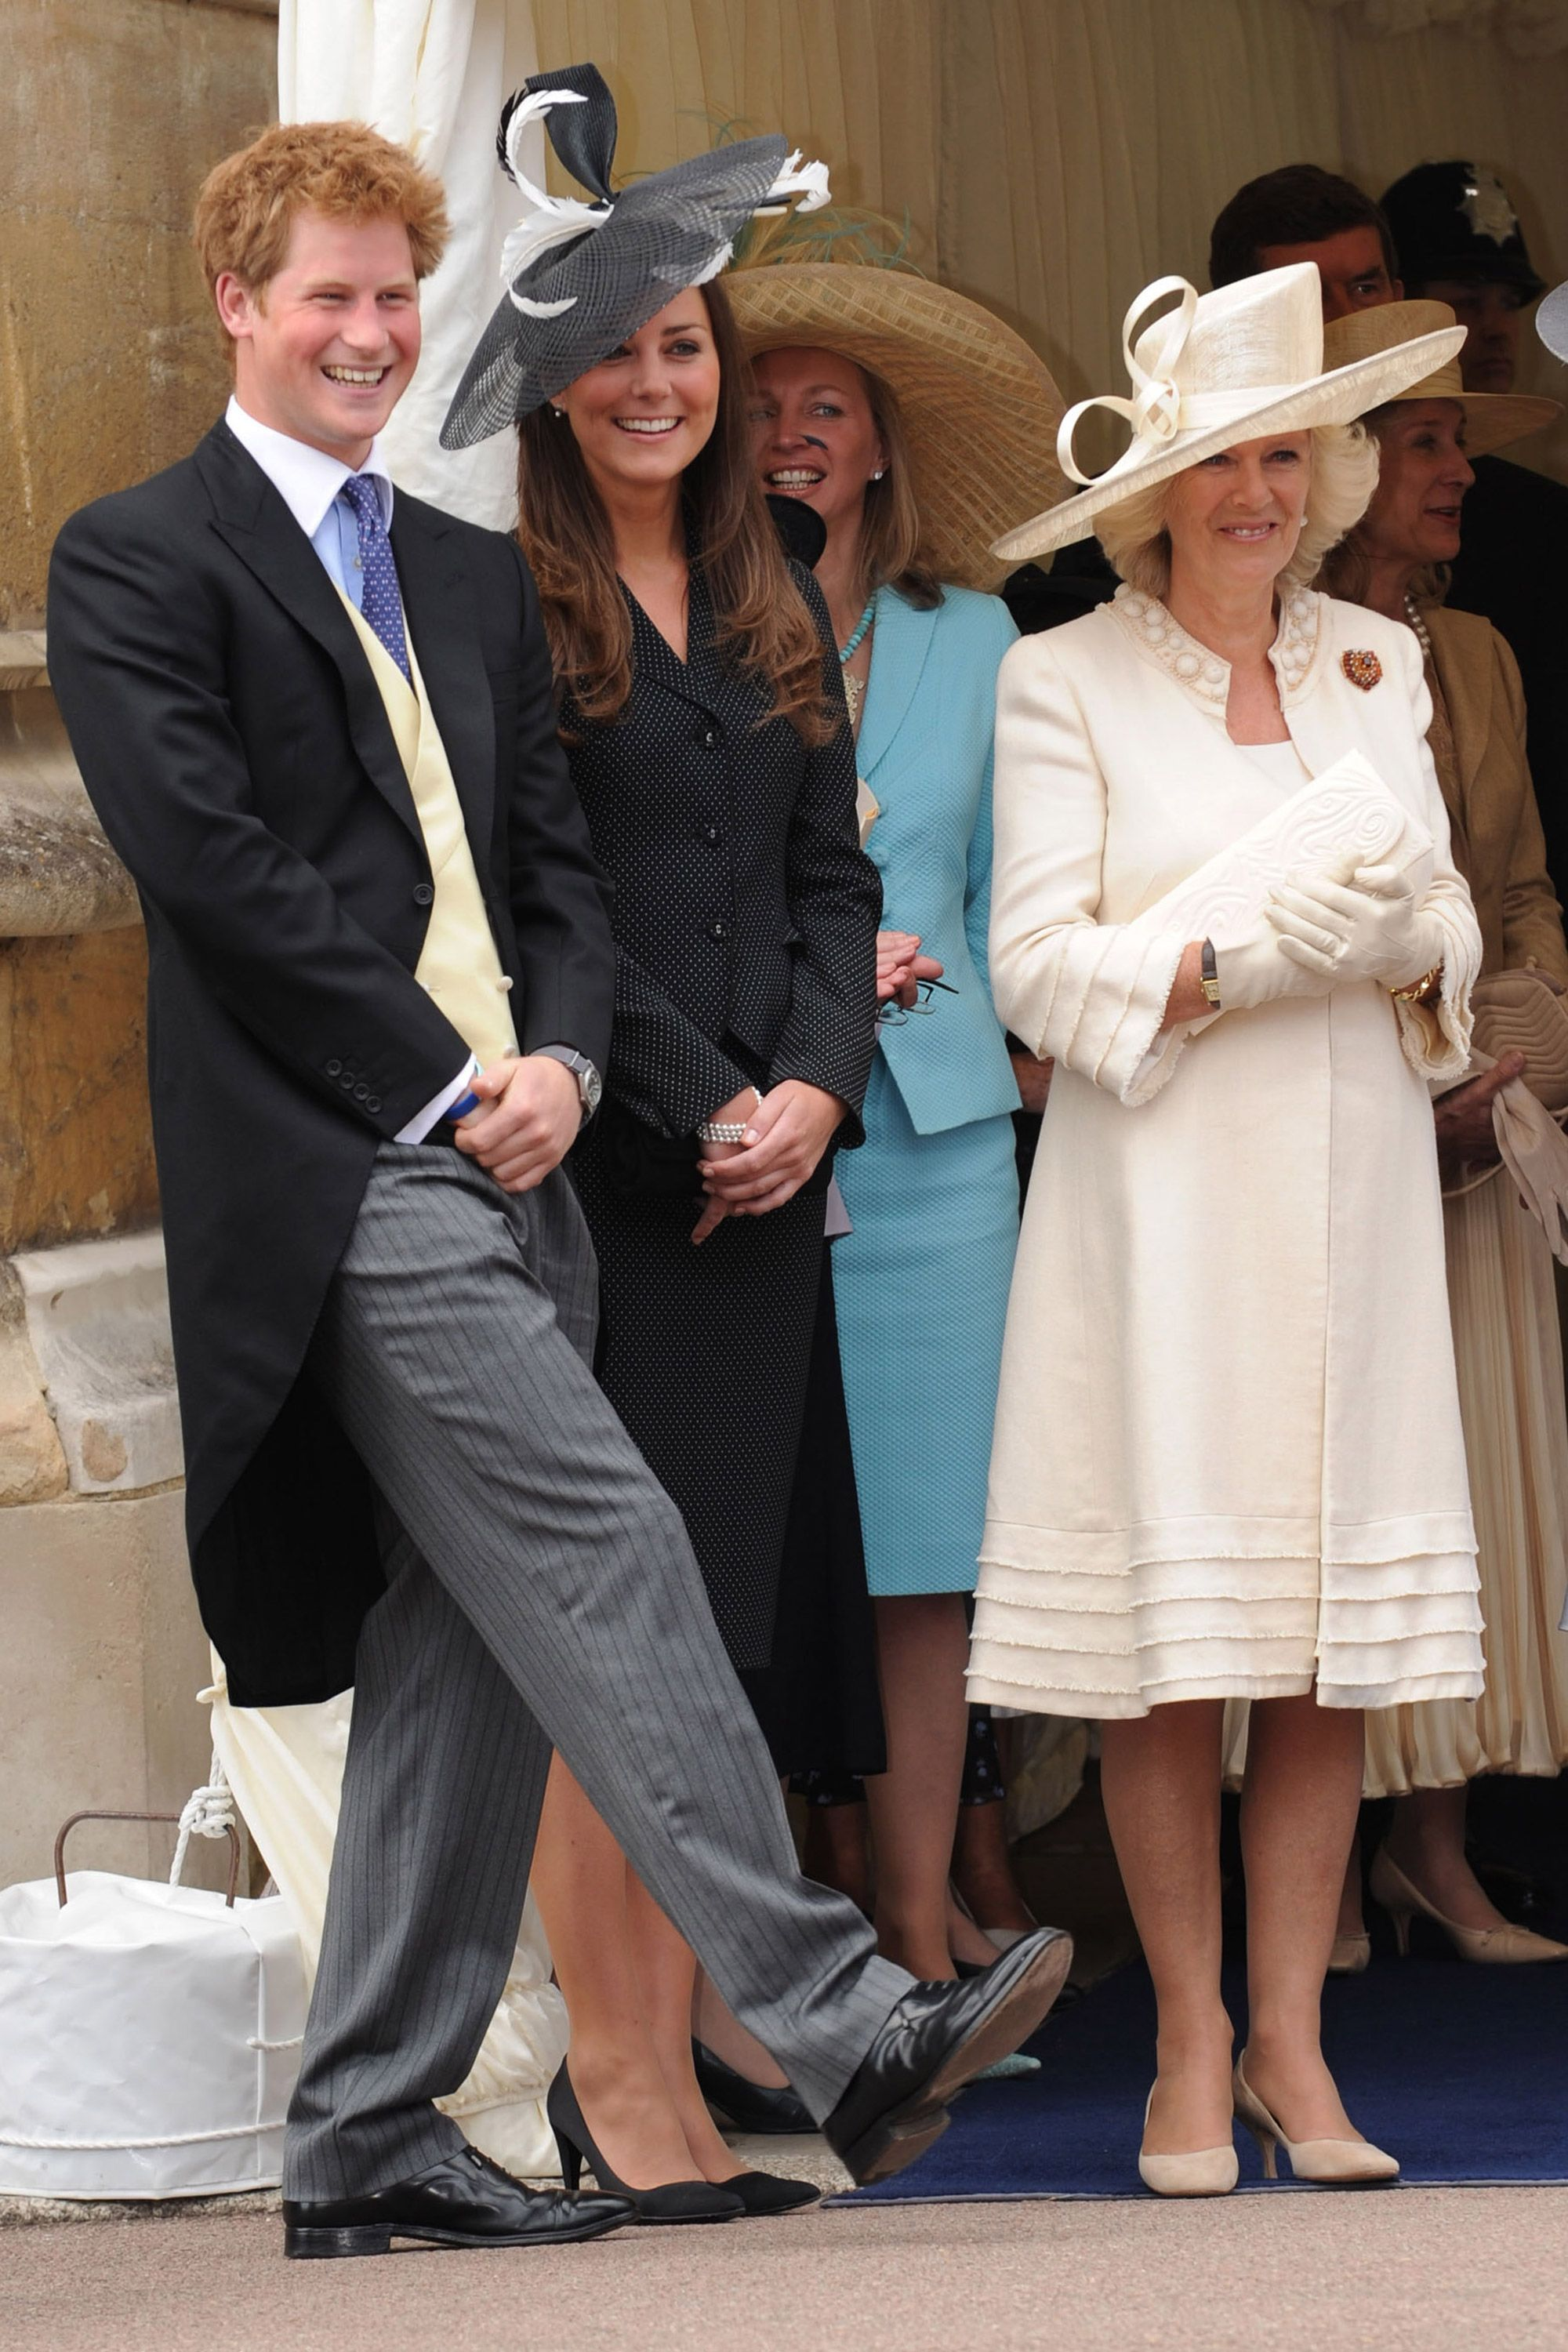 15 Hilarious Photos Of Prince Harry Being A Jokester She